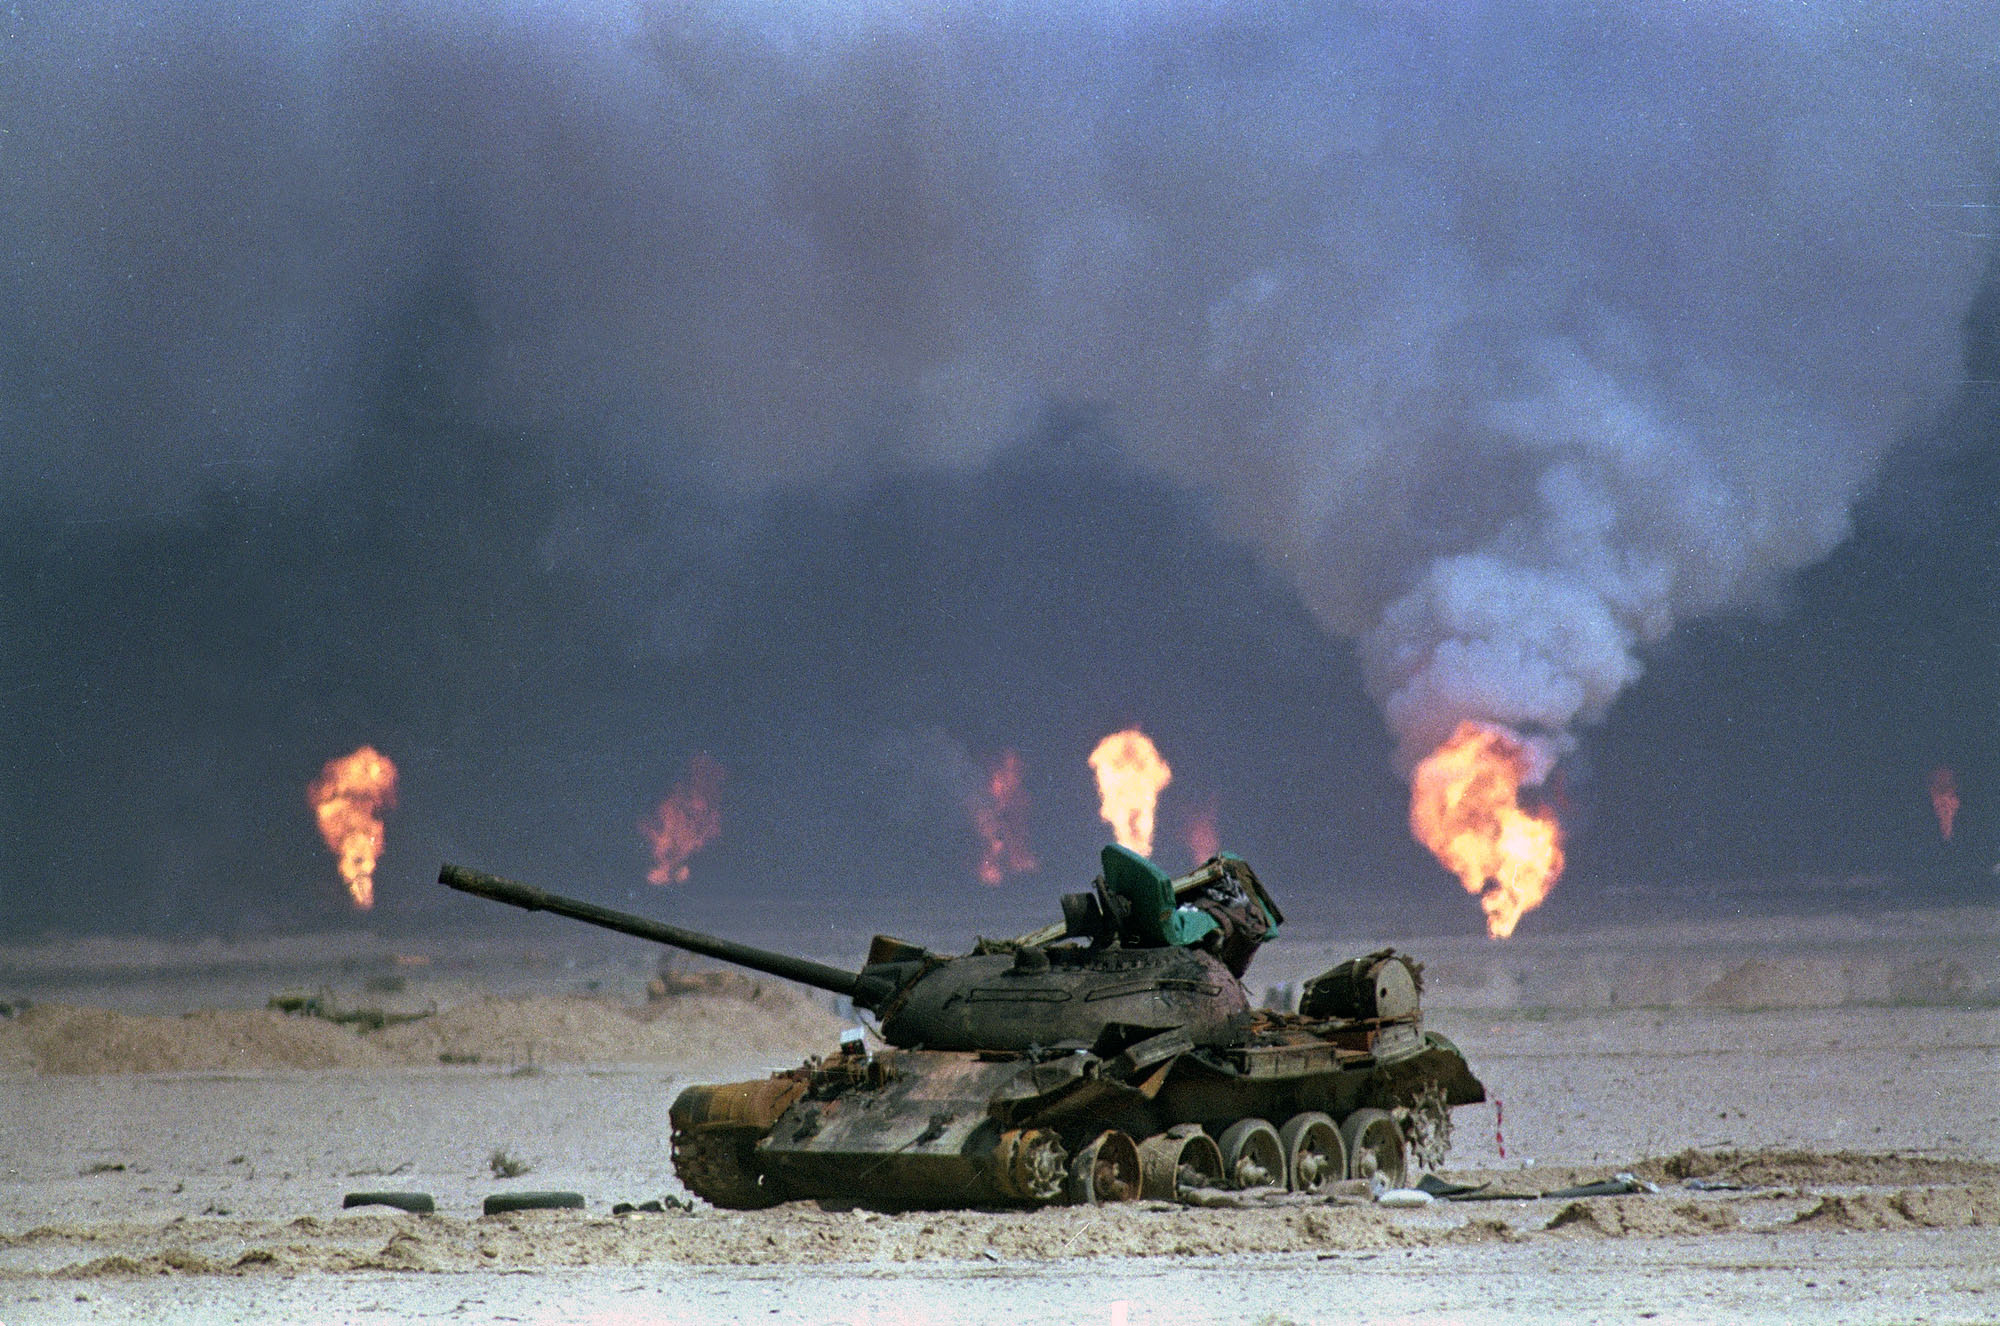 Operation Desert Storm: 25 Years Since the First Gulf War - The Atlantic